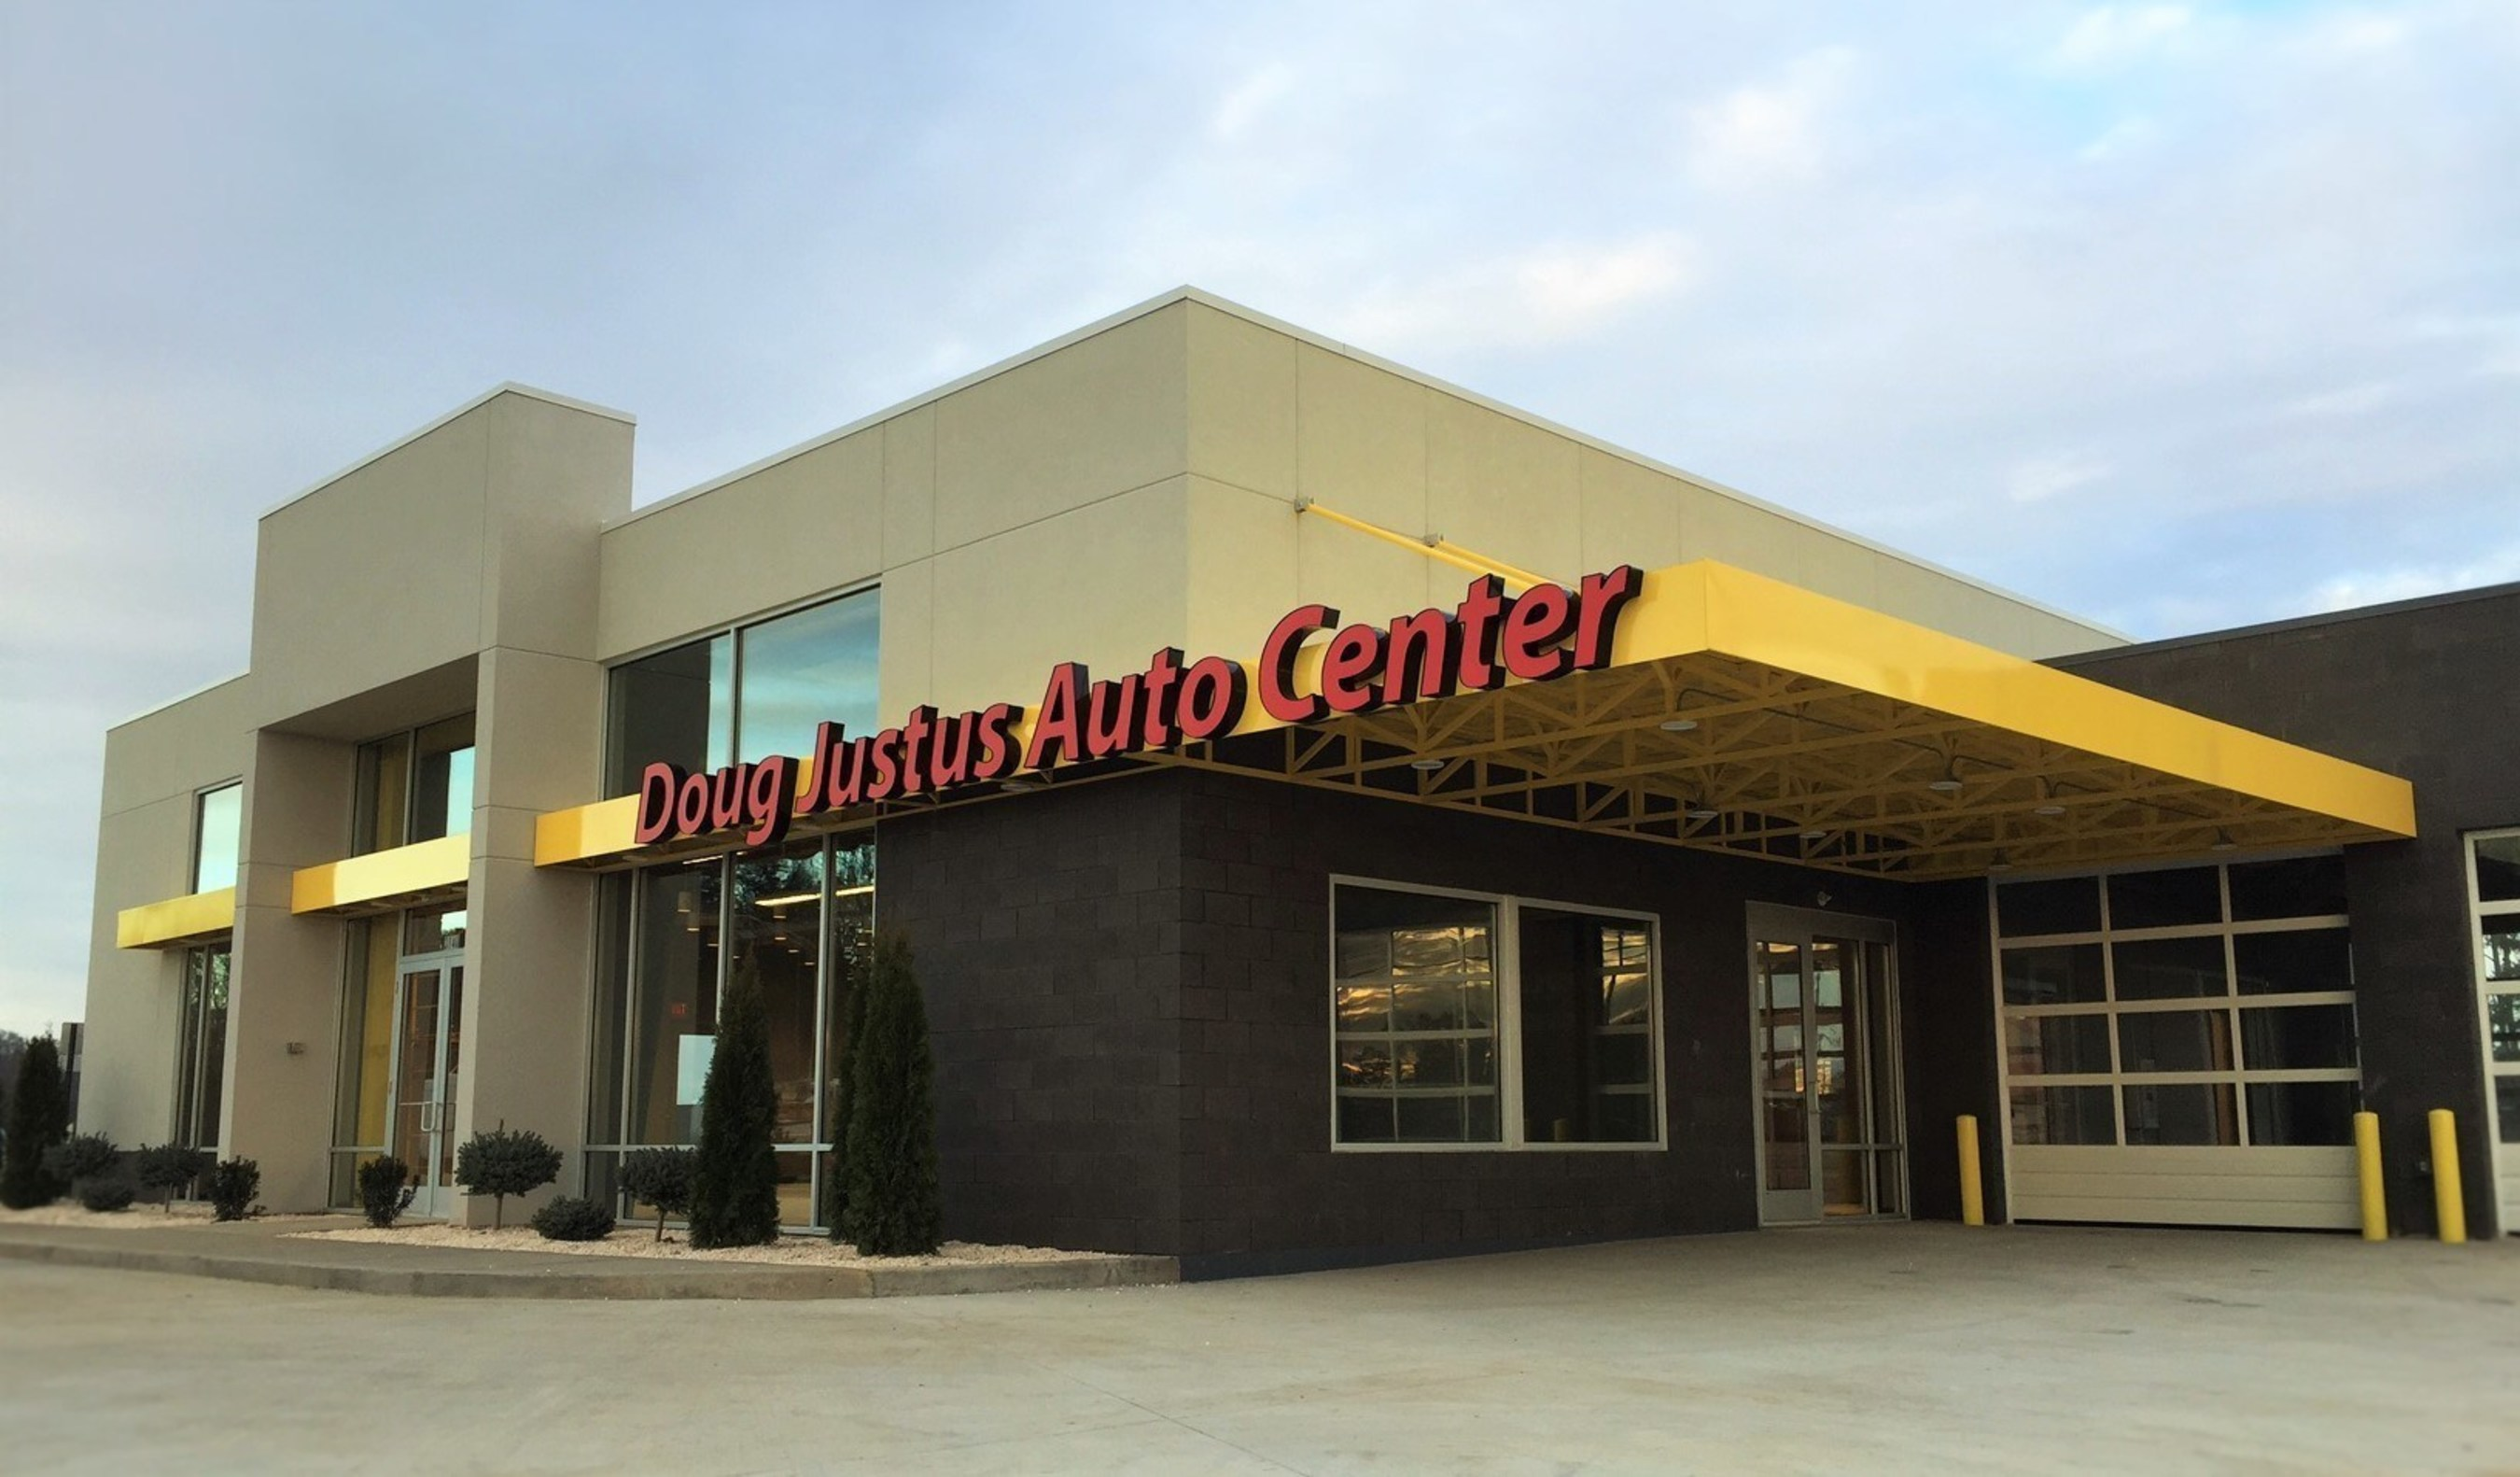 The all-new 4,680 sq. ft. Doug Justus Auto Center differentiates itself from traditional pre-owned automotive dealers by providing a contemporary interior and exterior design similar to the approach that many new, modern auto dealerships have embraced.